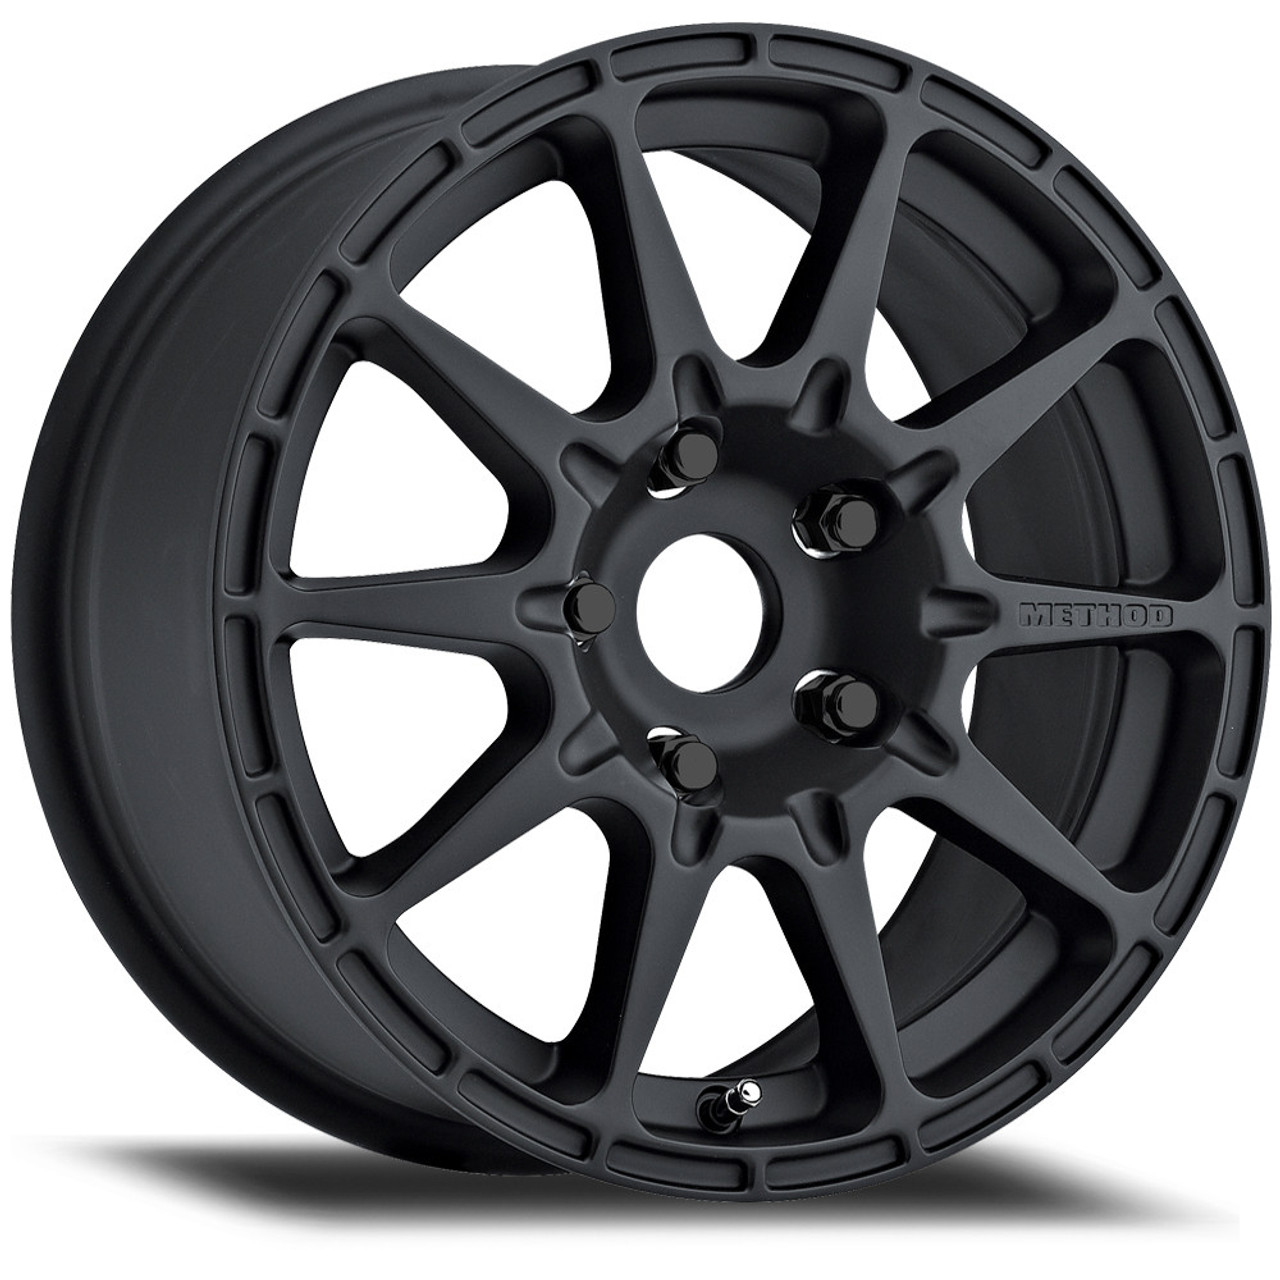 Method Race Wheels MR501 Rally | VT-Spec 15x7 Black